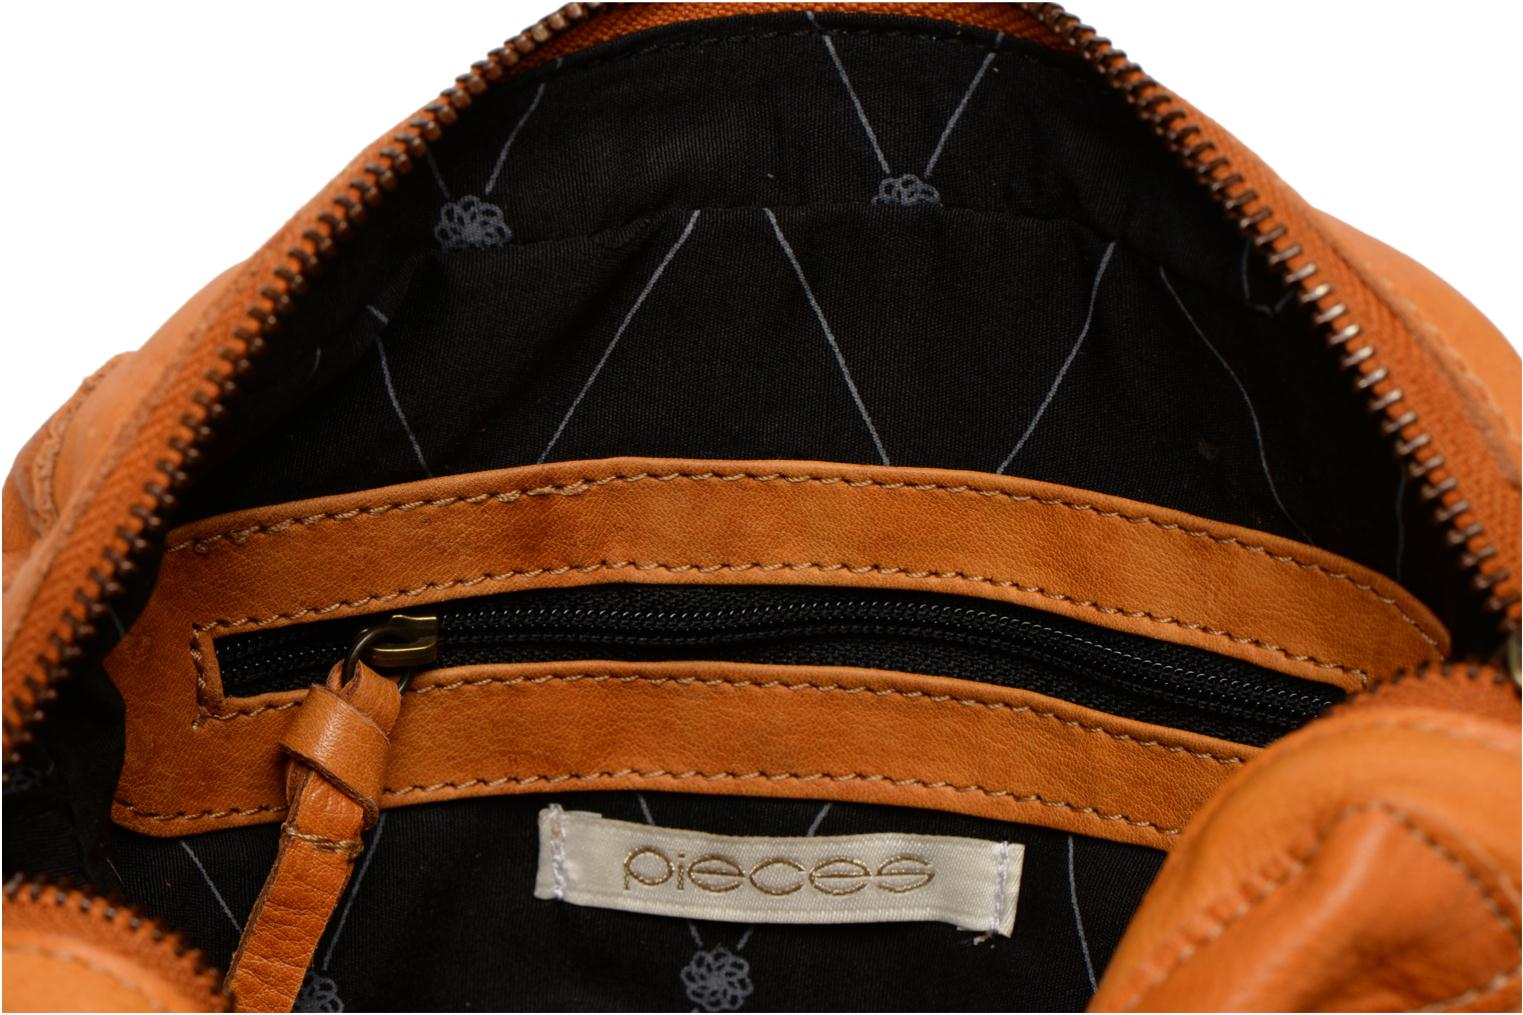 Handtassen Pieces Naina leather Crossover new Bruin achterkant